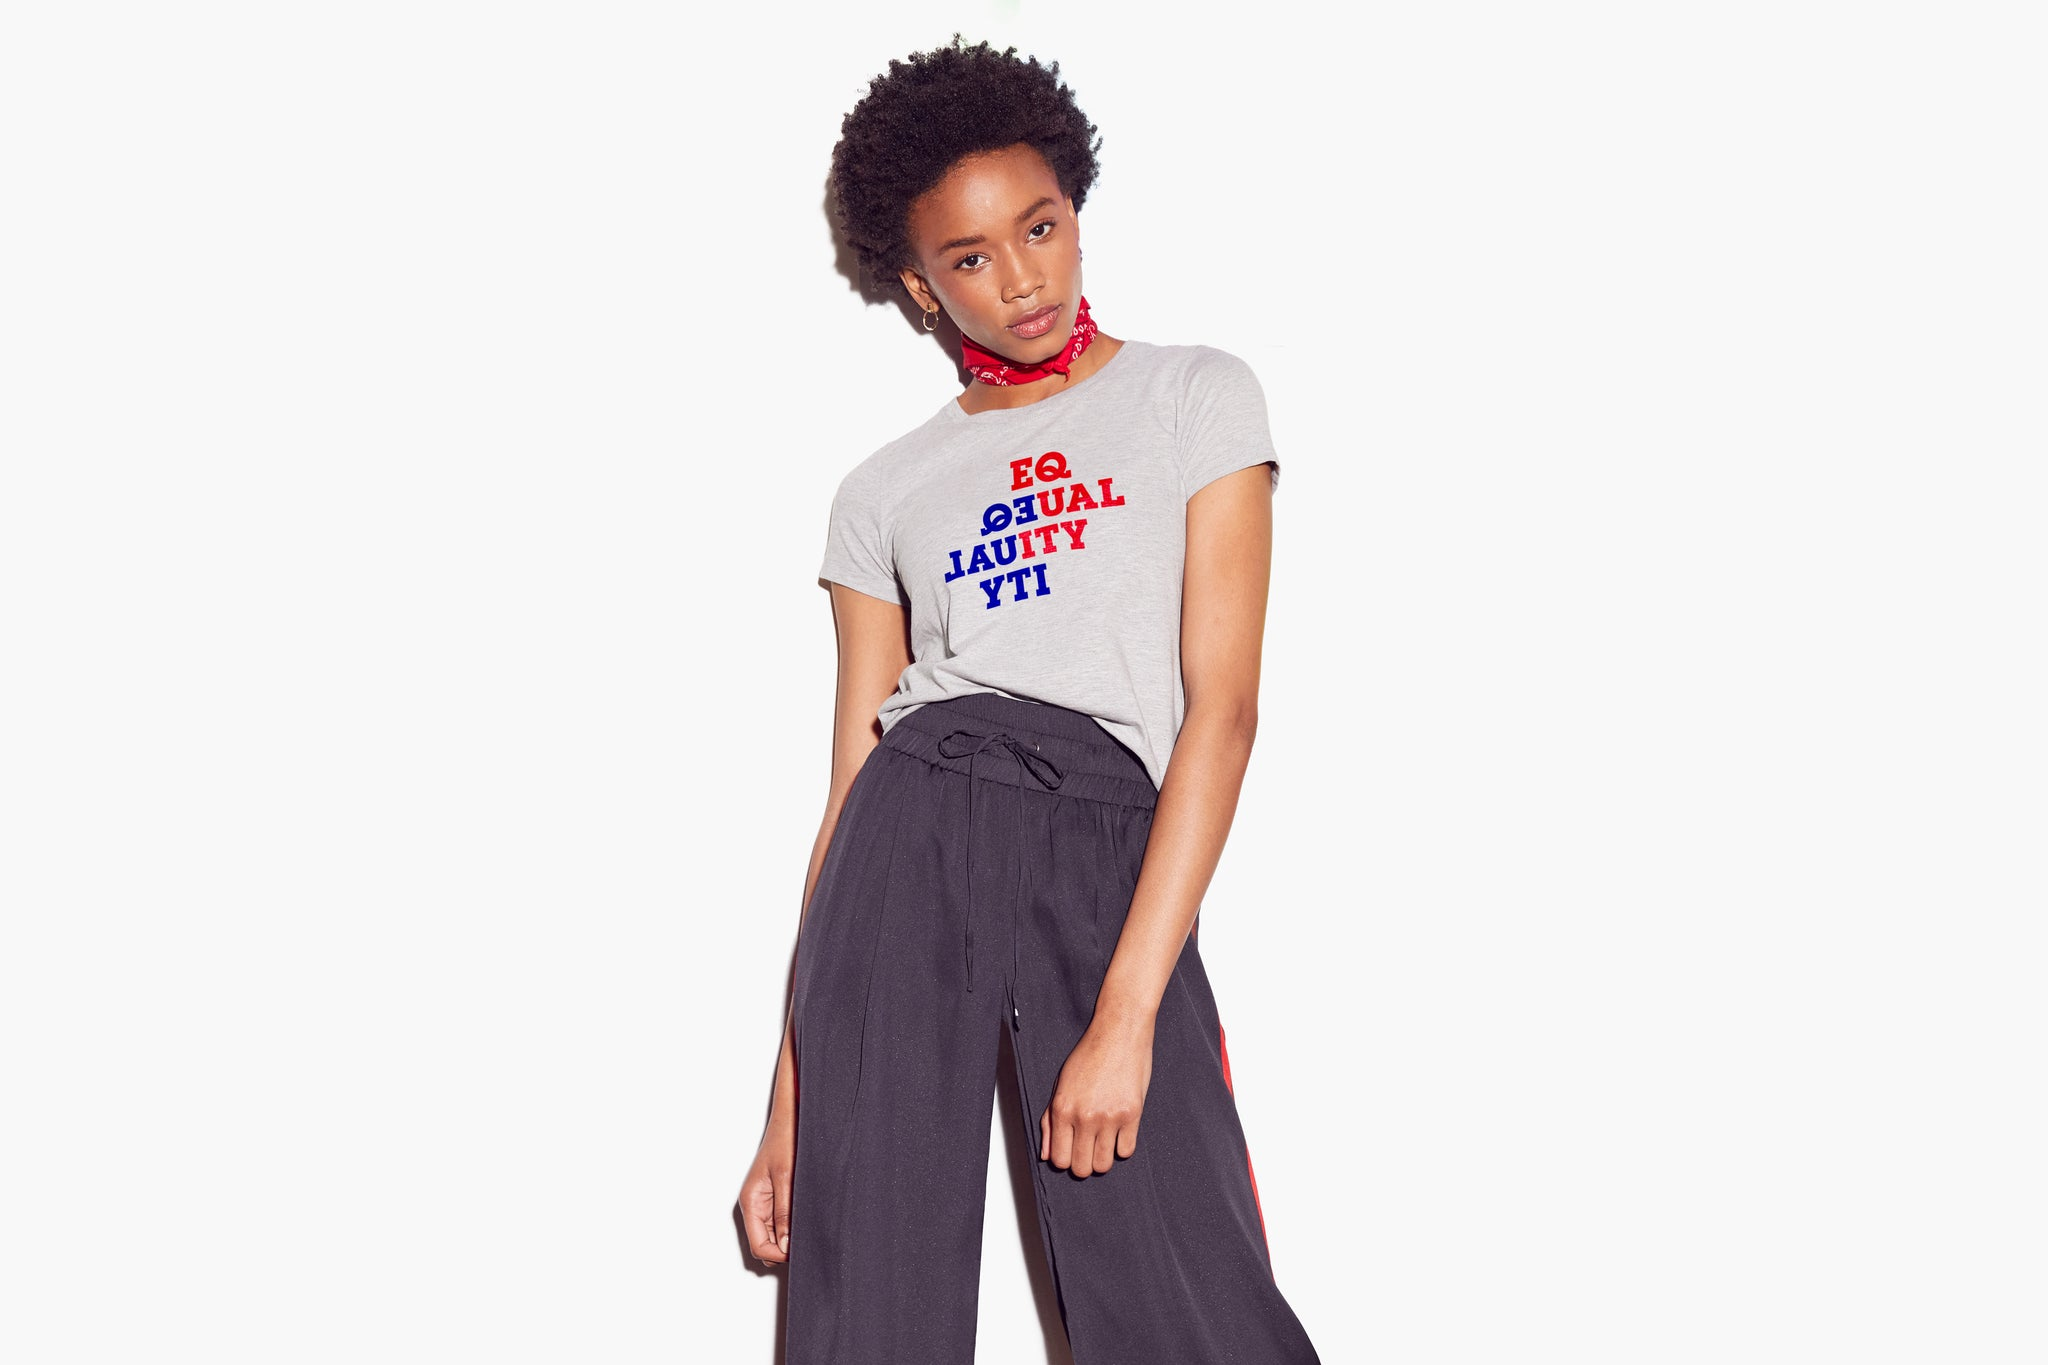 Prinkshop x Social Goods x Global Citizen Equality Tee